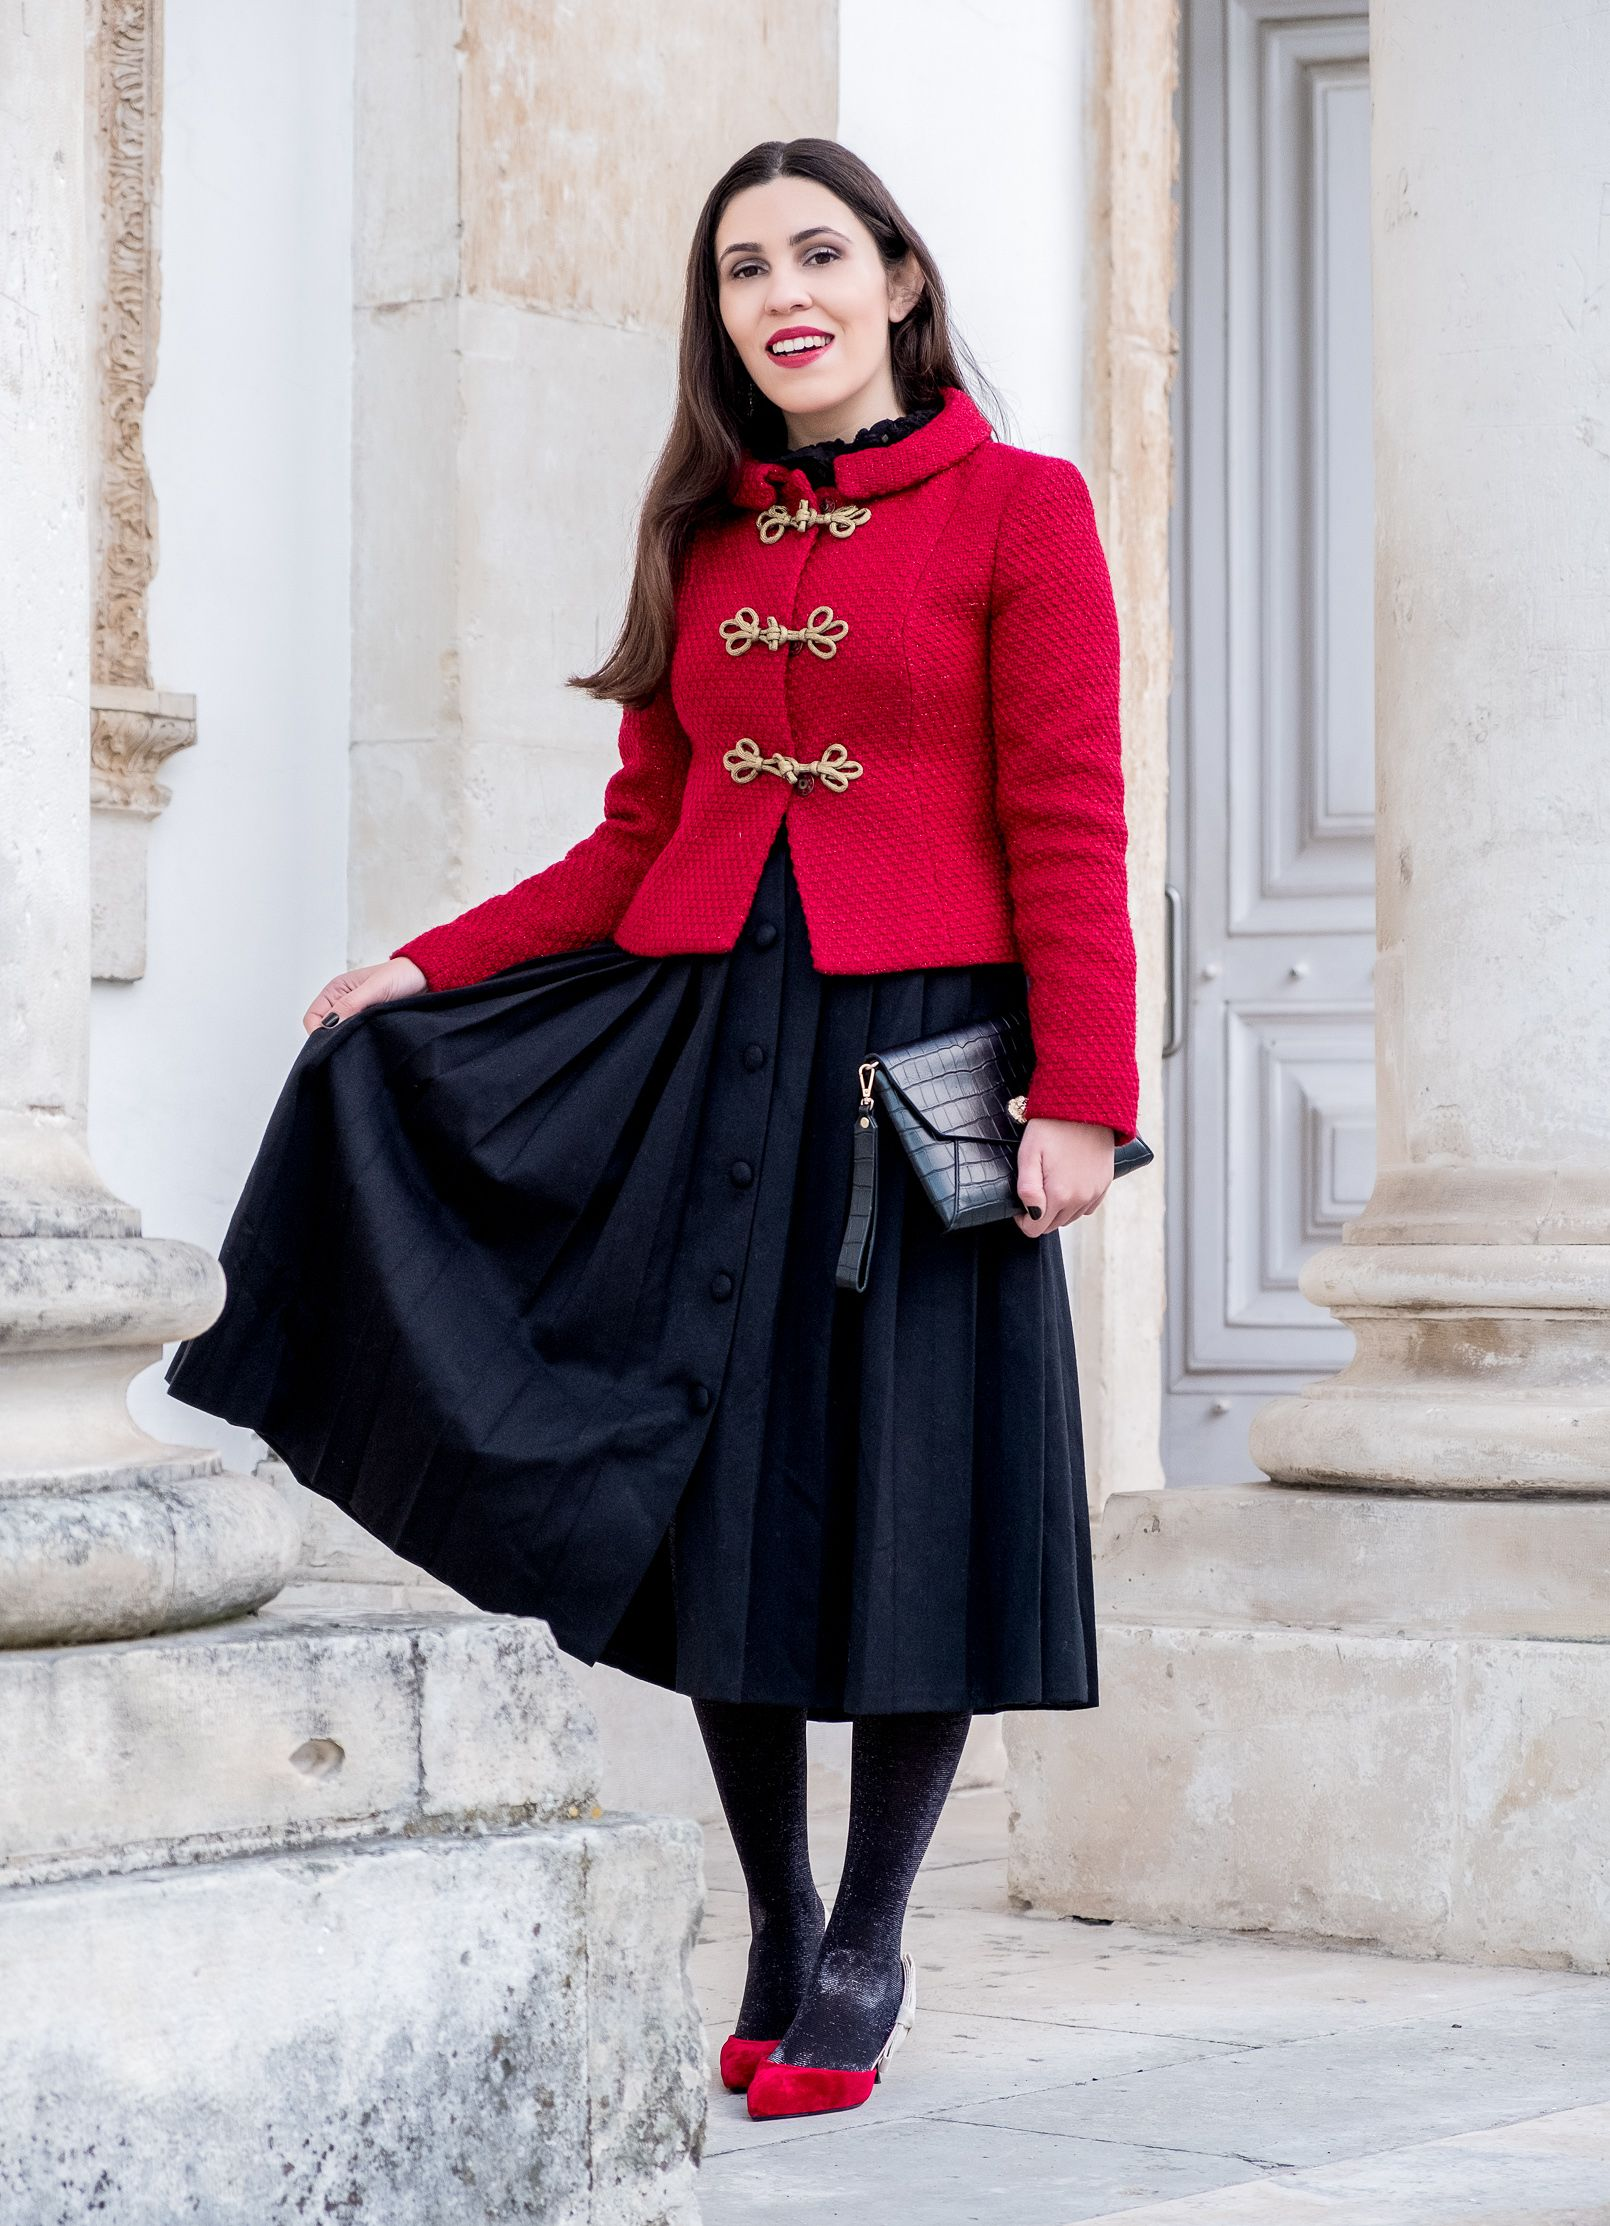 4fdc5d6336 Christmas classic outfit - #buttons #Christmas #Classic #clutch #Croco  #Dior #frontbuttons #Gold #inspired #Jacket #Lanidor #Mango #midiskirt  #Military #old ...